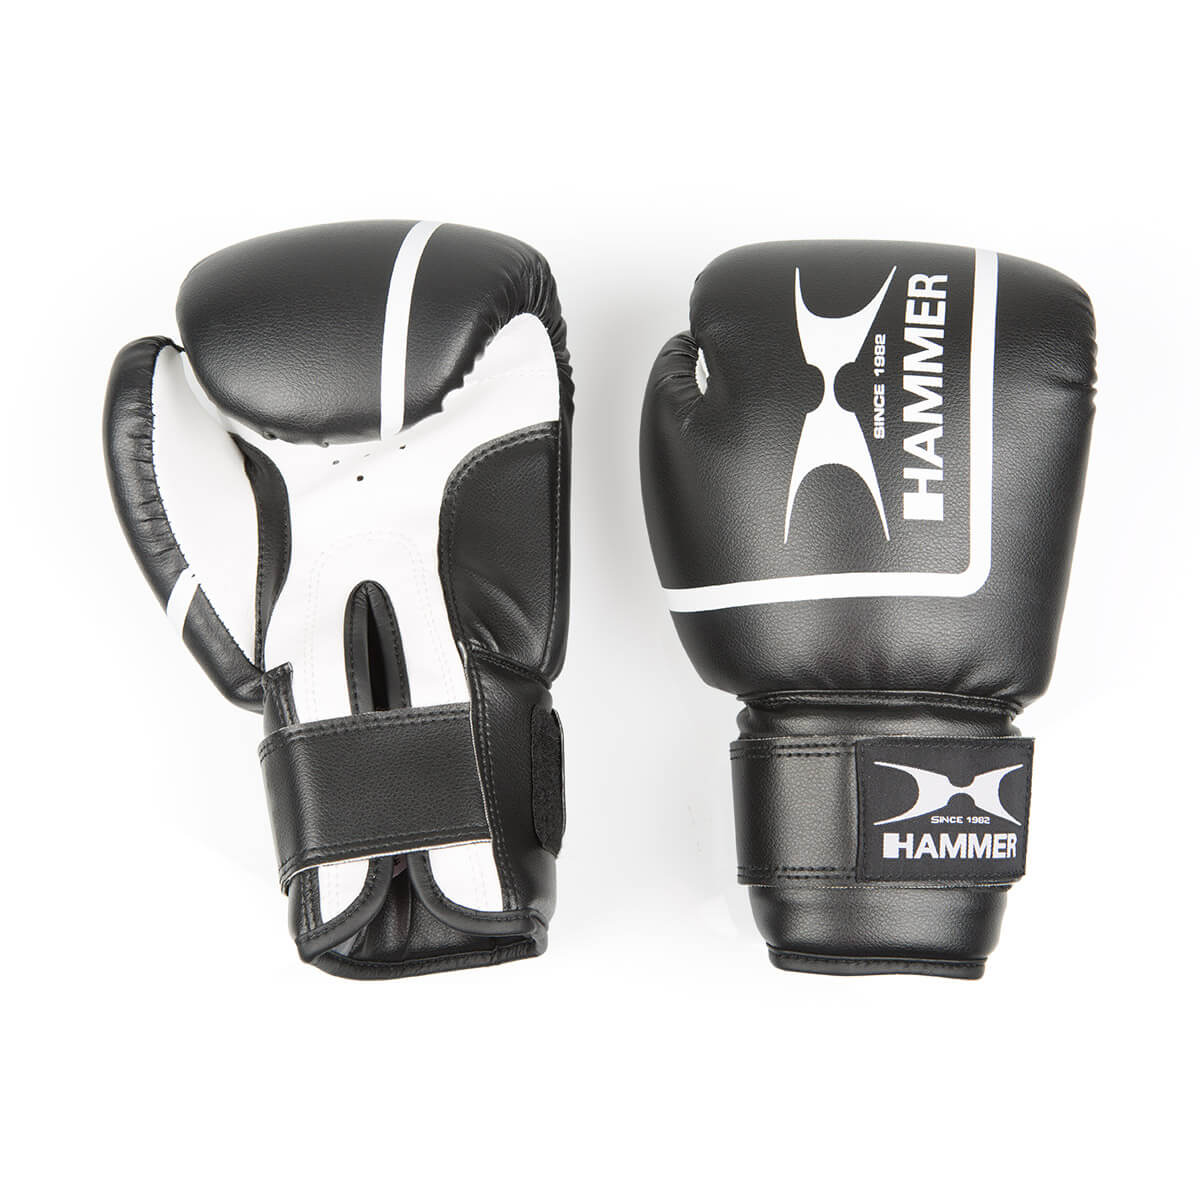 Image of HAMMER BOXING Boxhandschuhe Fit 2 - 10oz